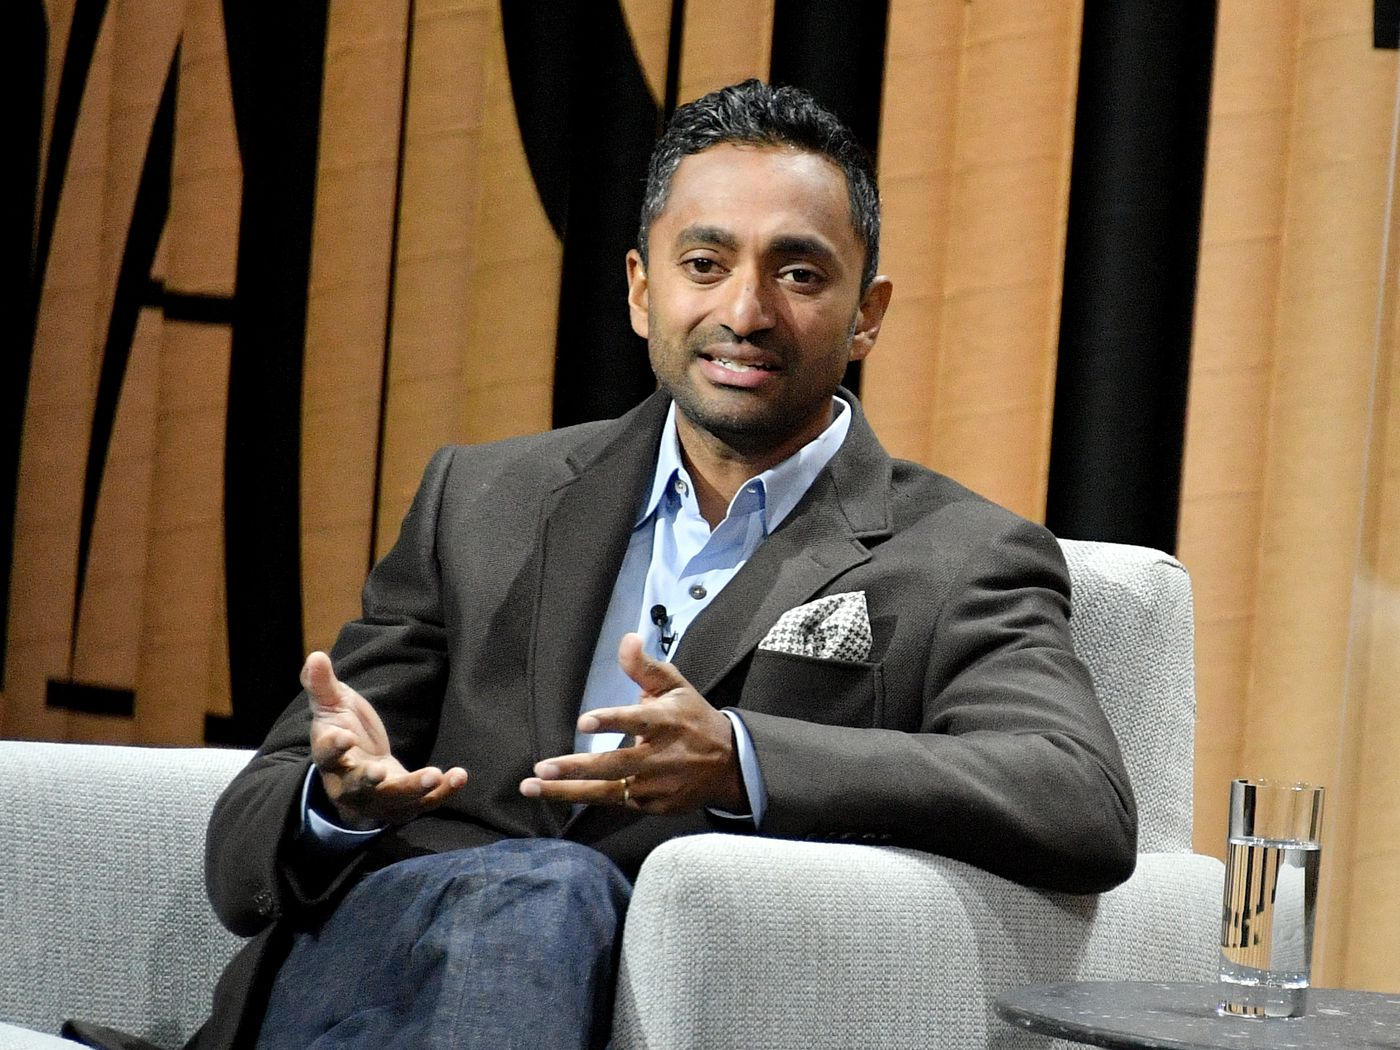 Former Facebook exec says social media is ripping apart society